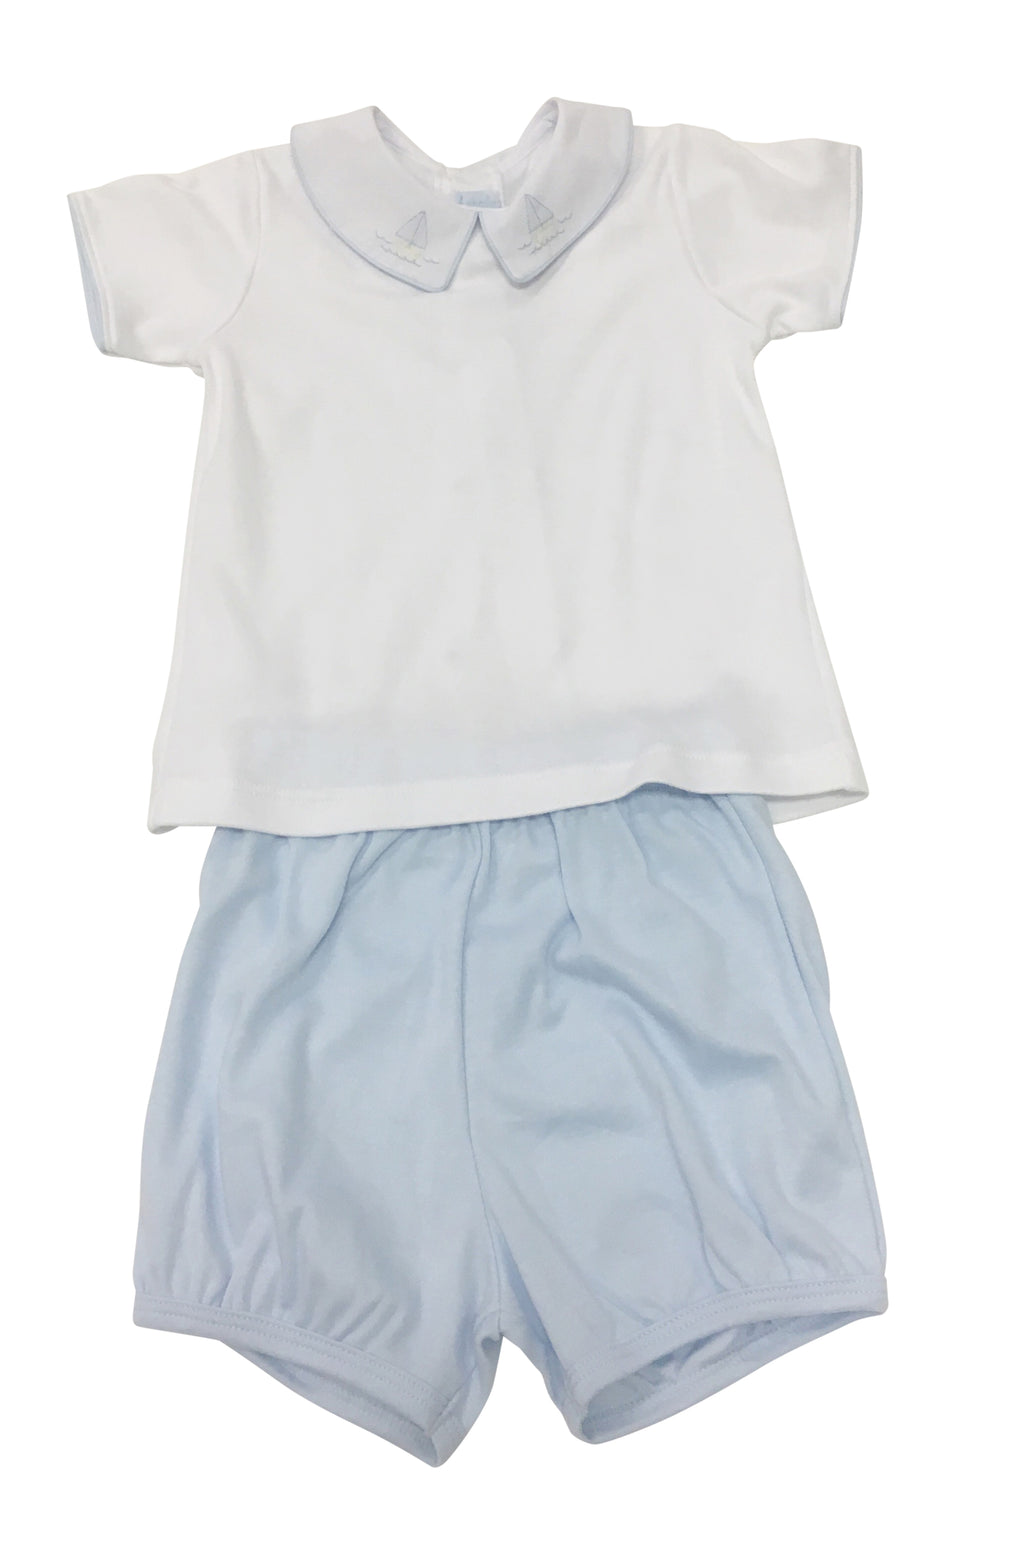 Auraluz 2 Piece Knit Set Blue Sailboat - Born Childrens Boutique